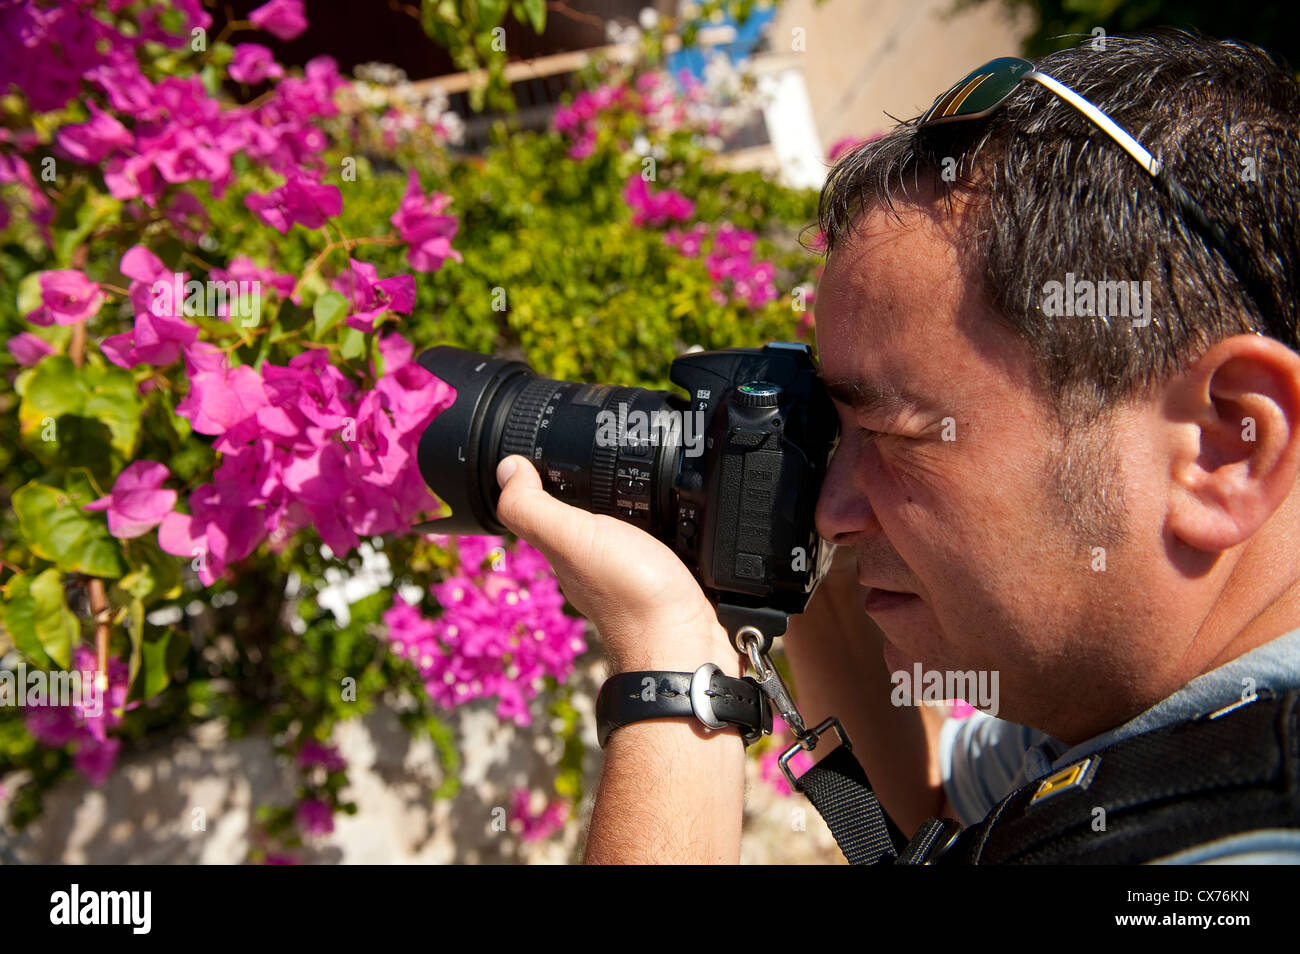 Close up of a photographer using a dslr camera to take a photograph. - Stock Image